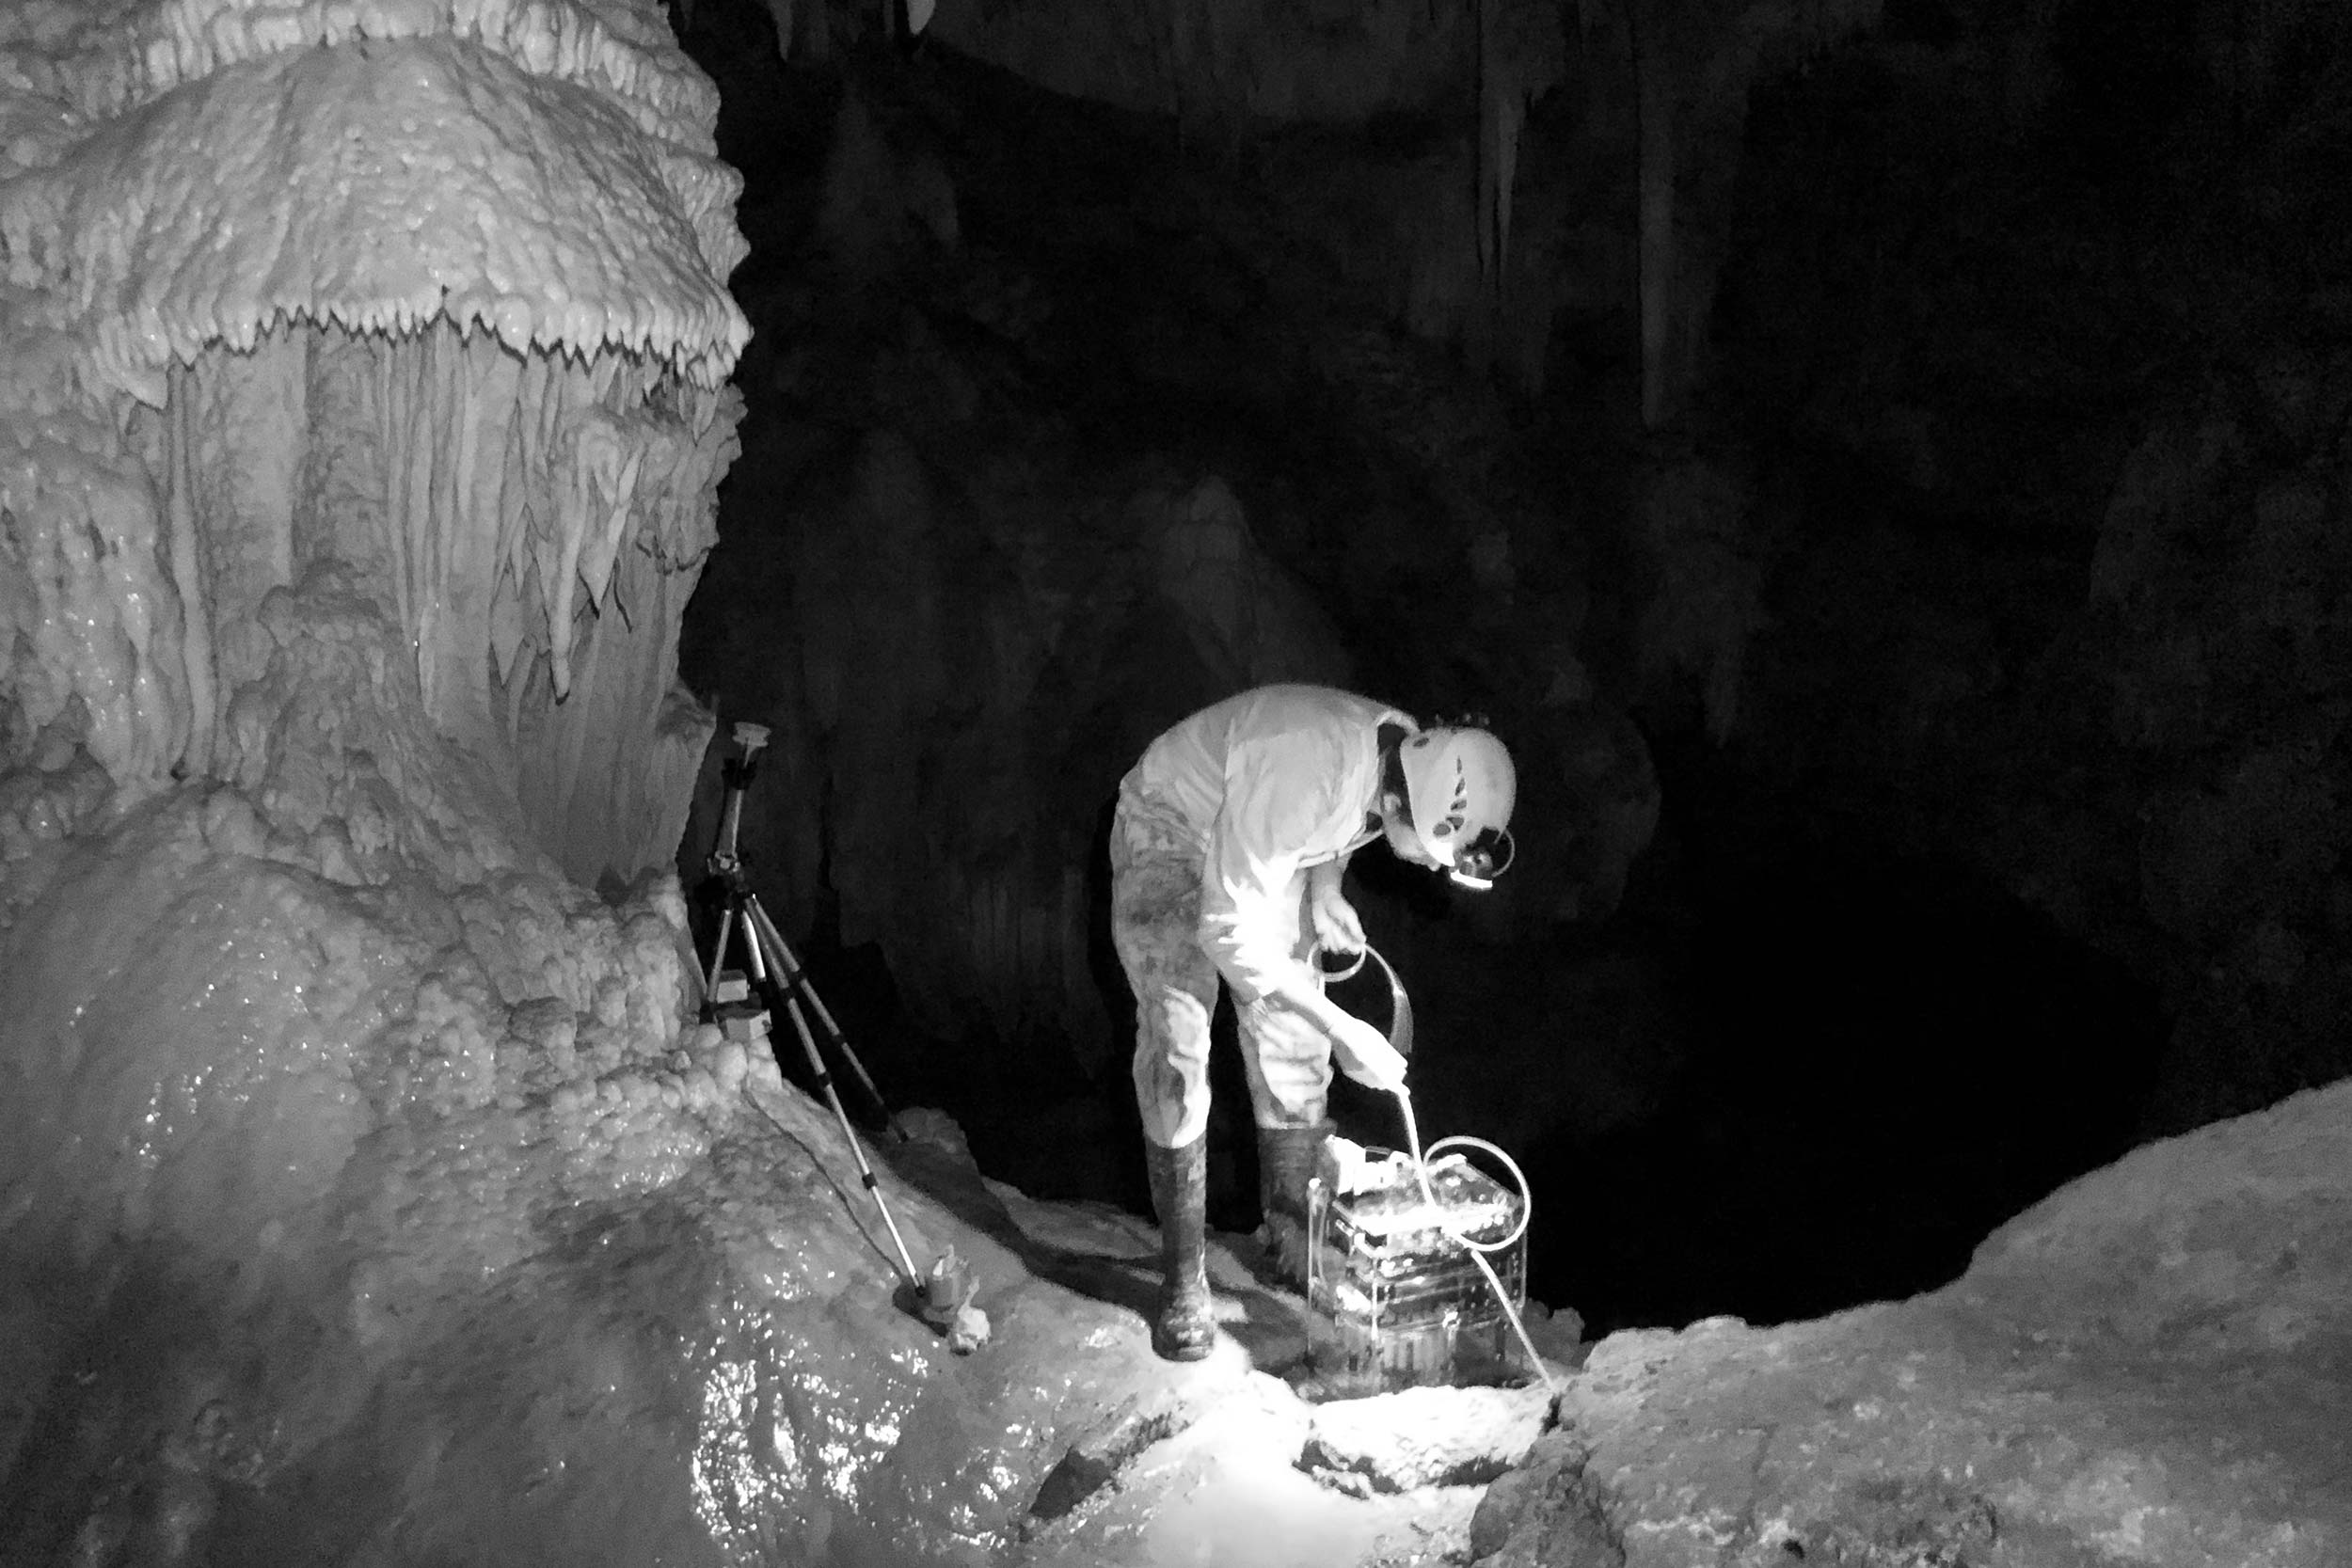 Syp autosampler device being installed by in cave by field scientist.